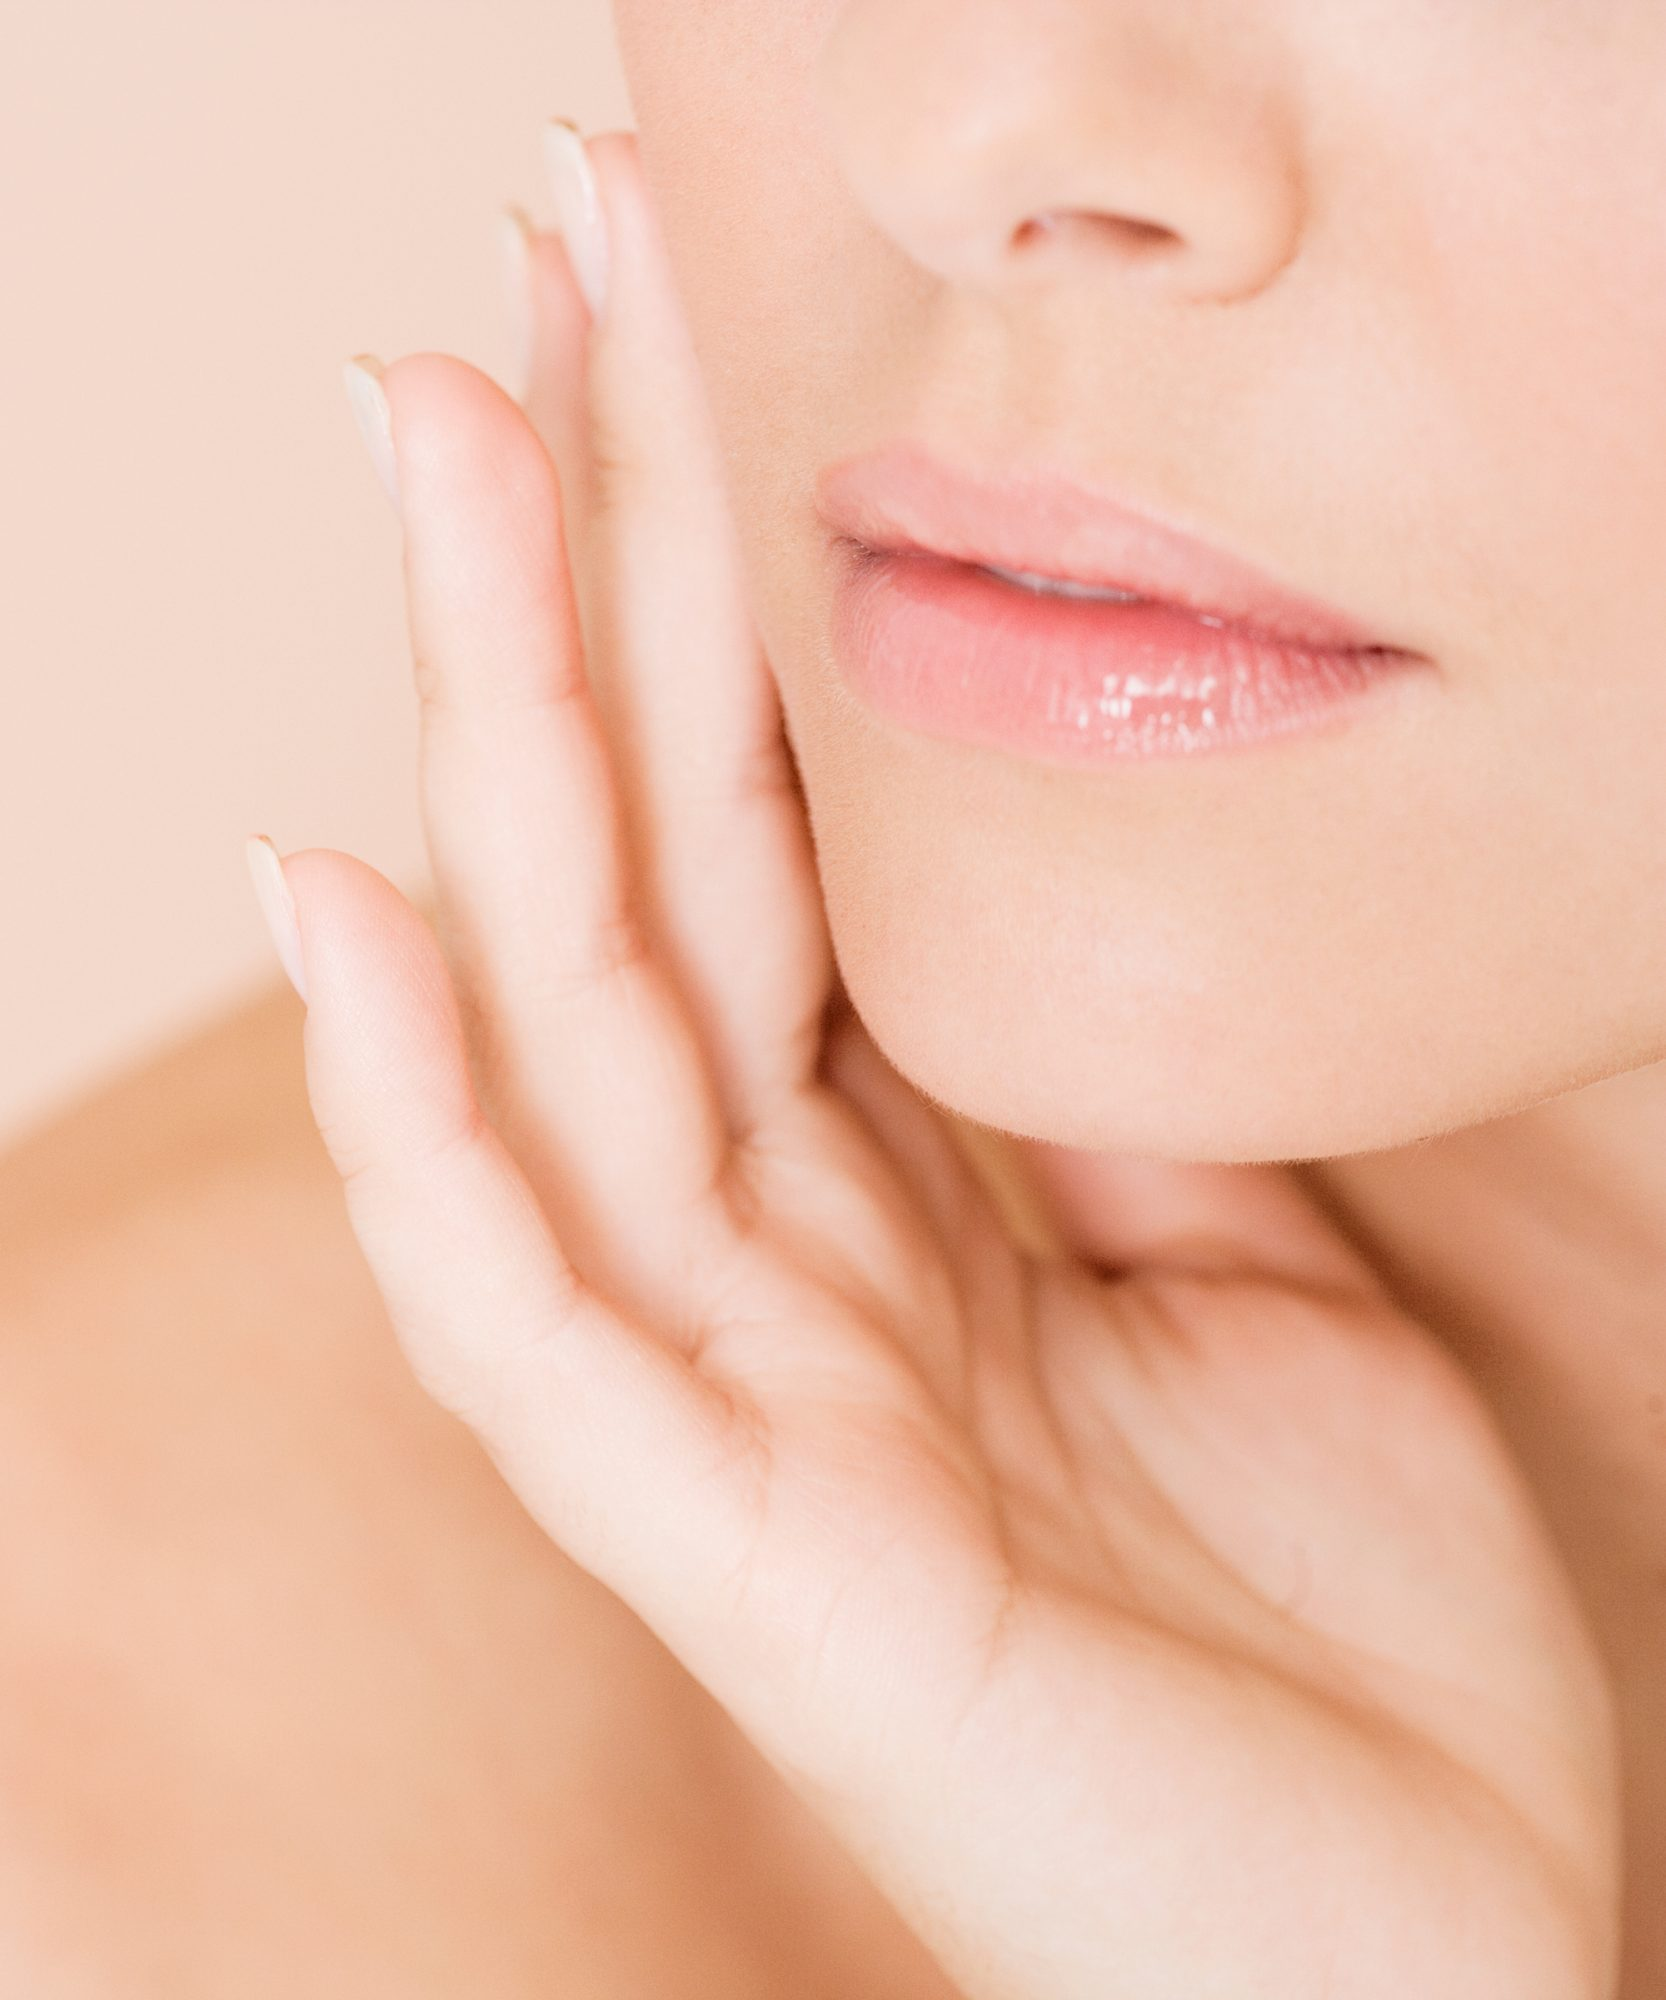 What Causes Rogue Facial Hairs to Grow? We Have The Answer